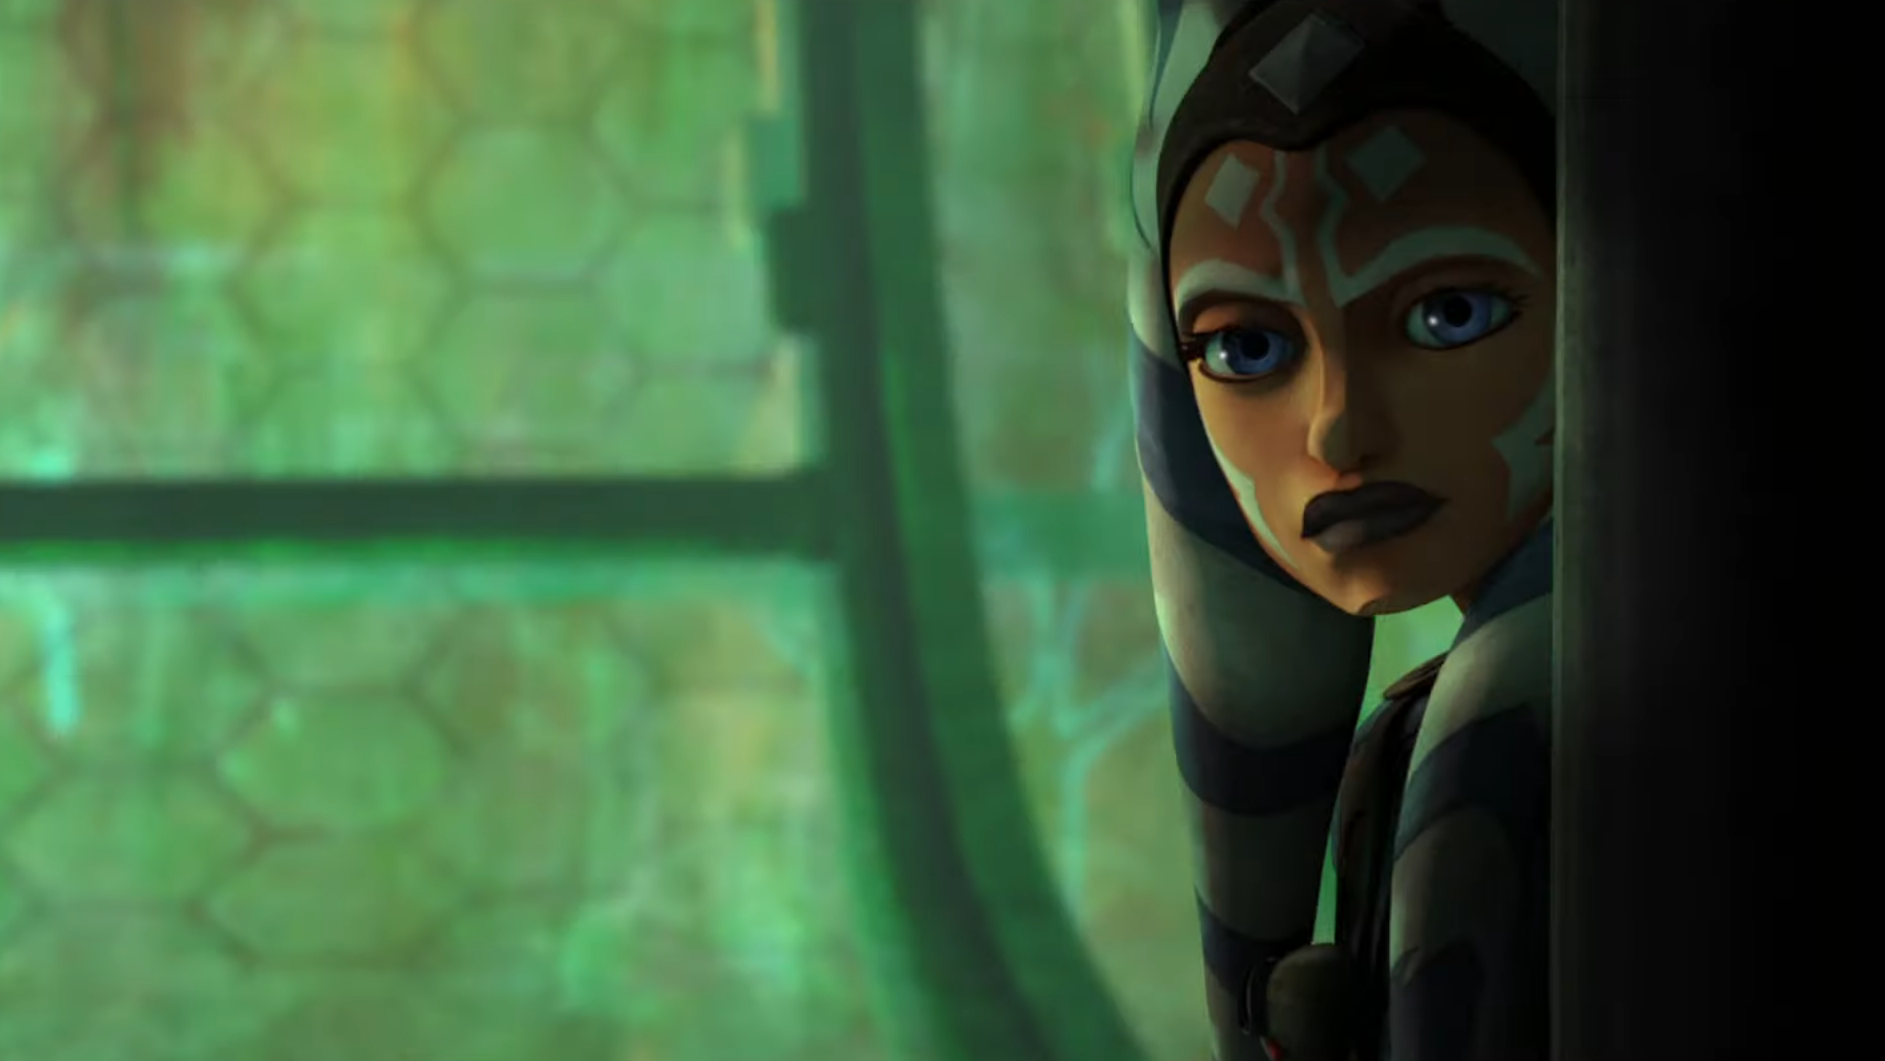 Clone Wars' Next Arc Sends Ahsoka Tano Into The Star Wars Underworld